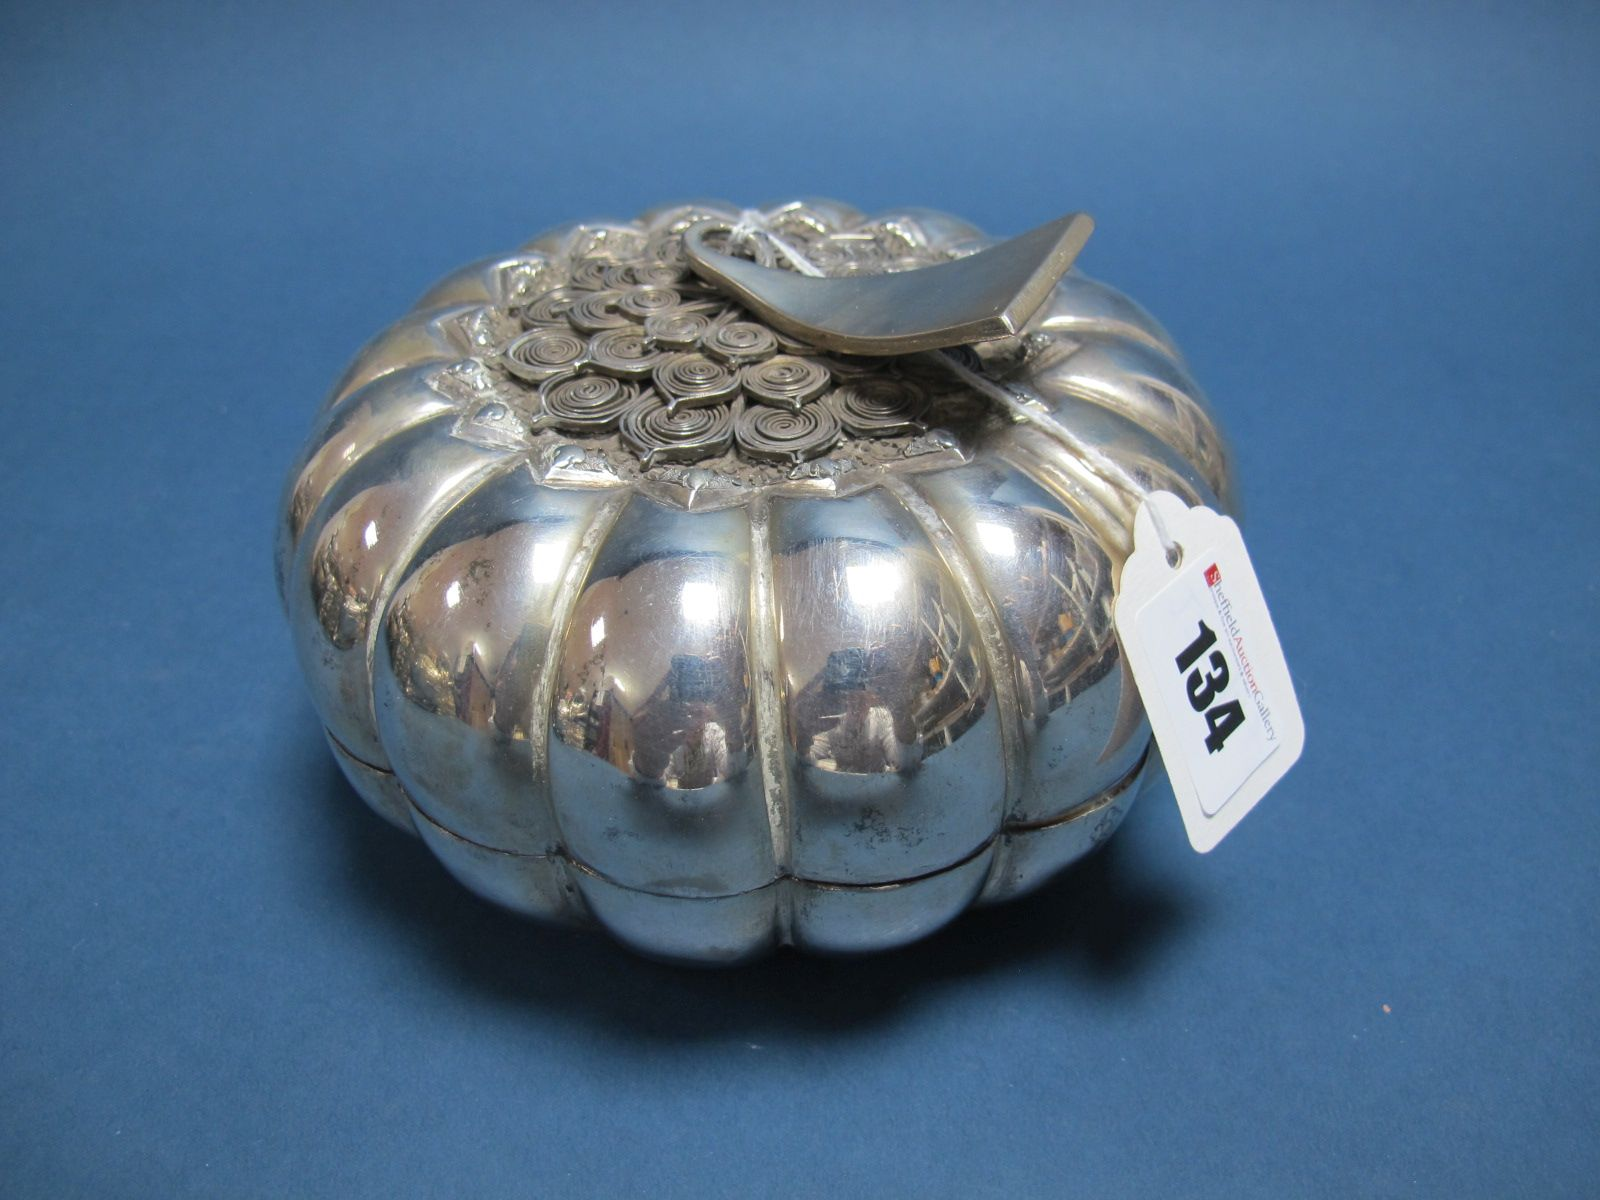 Lot 134 - A Cambodian Decorative Lidded Box, as a stylised pumpkin, with applied scroll detail, stamped ""